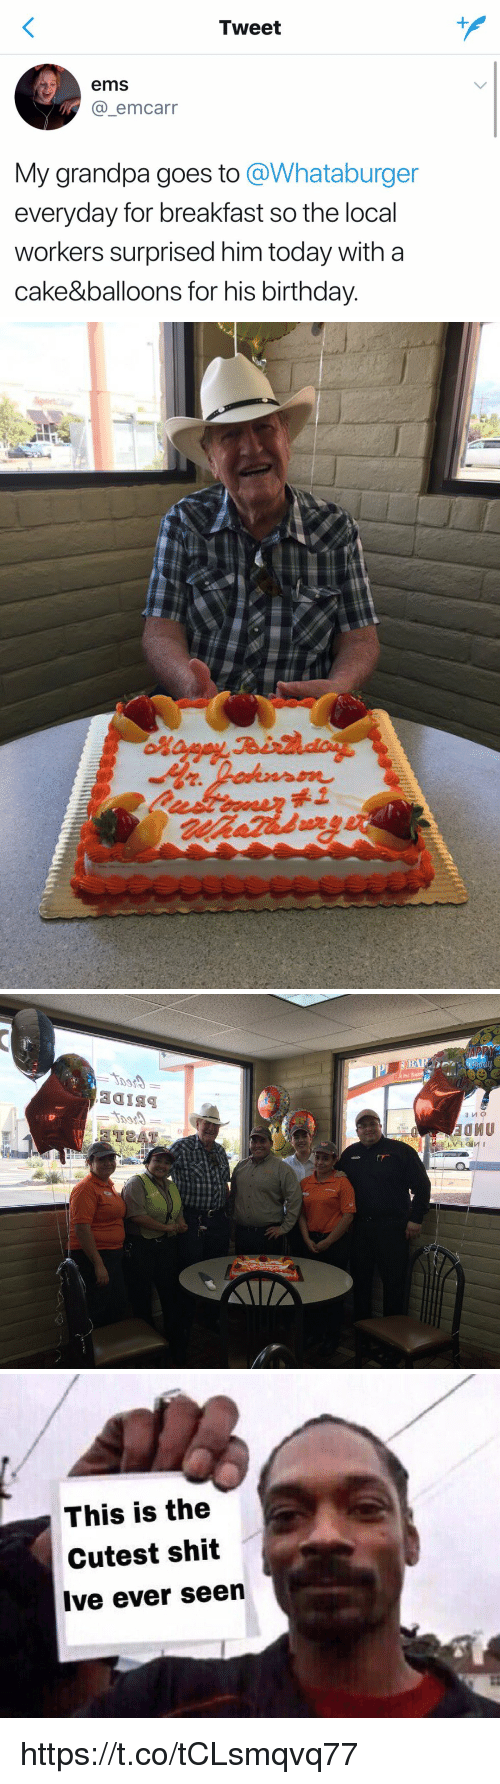 Whataburger: Tweet  ems  @_emcarr  My grandpa goes to @Whataburger  everyday for breakfast so the local  workers surprised him today with a  cake&balloons for his birthday   bBIDE   This is the  Cutest shit  Ive ever seen https://t.co/tCLsmqvq77